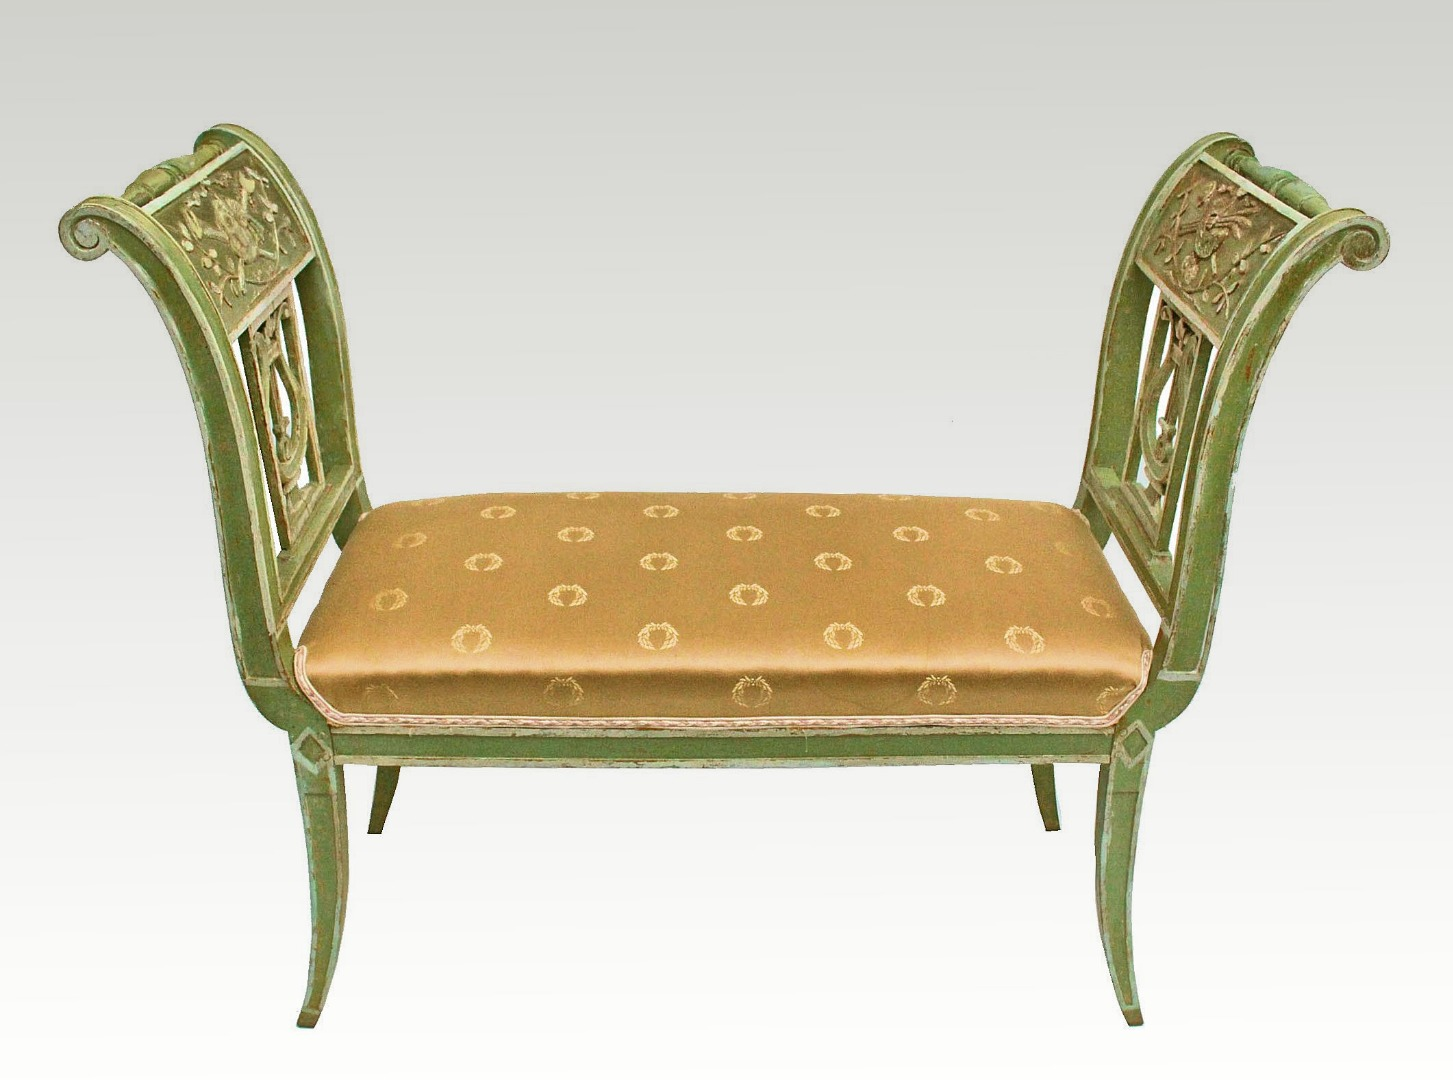 FRENCH DIRECTOIRE STYLE SEAT